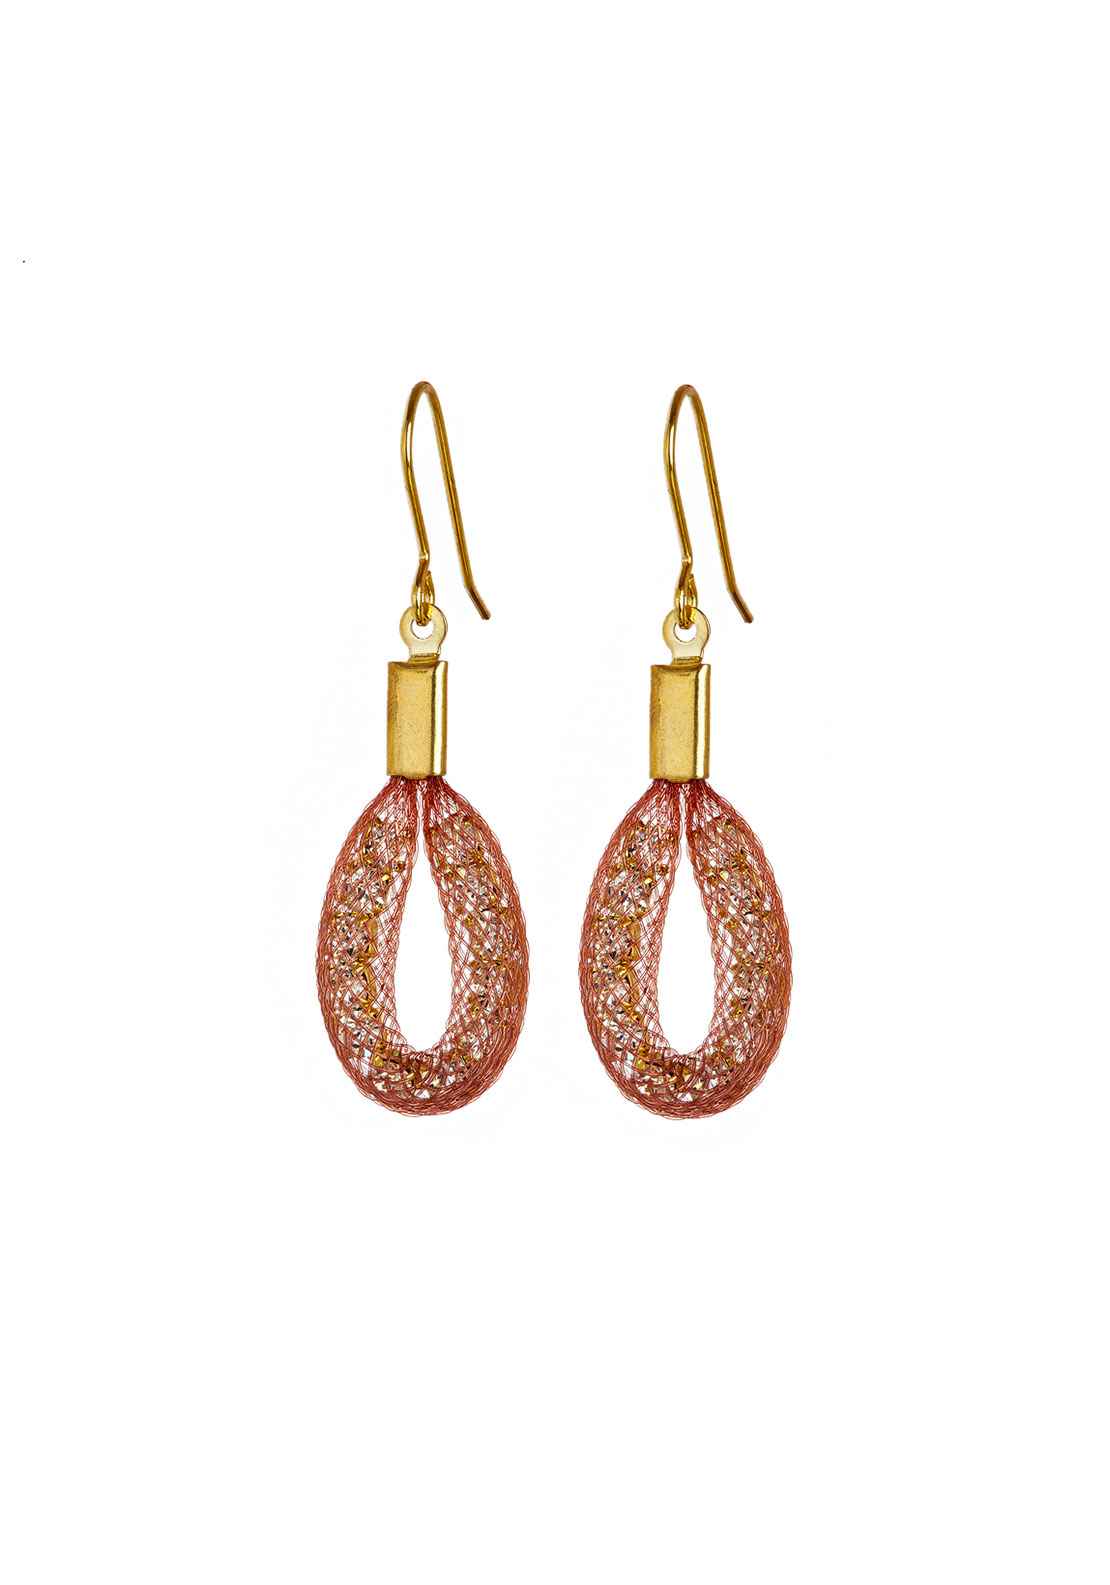 Blaithin Ennis Topaz Tiny Teardrop Earrings, Blush Gold